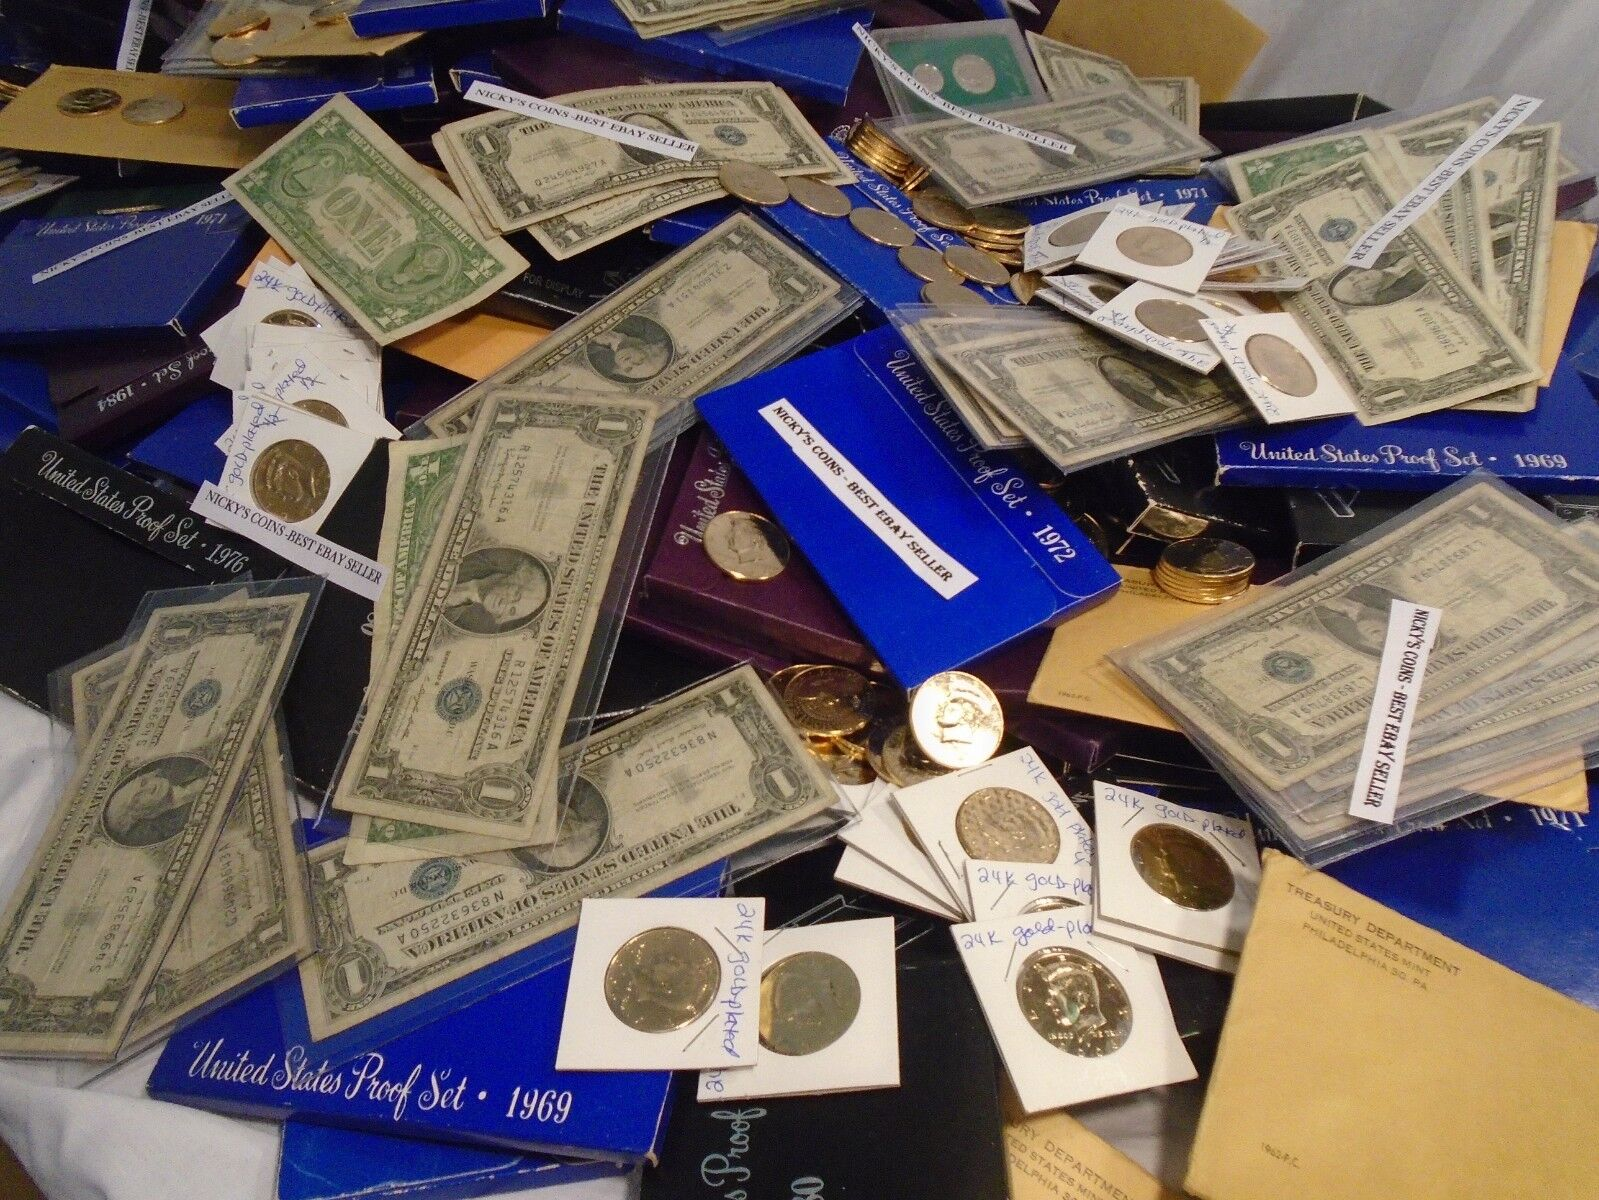 OLD ESTATE US COIN LOT SALE GOLD SILVER CURRENCY SALE HOARD PROOF COLLECTION